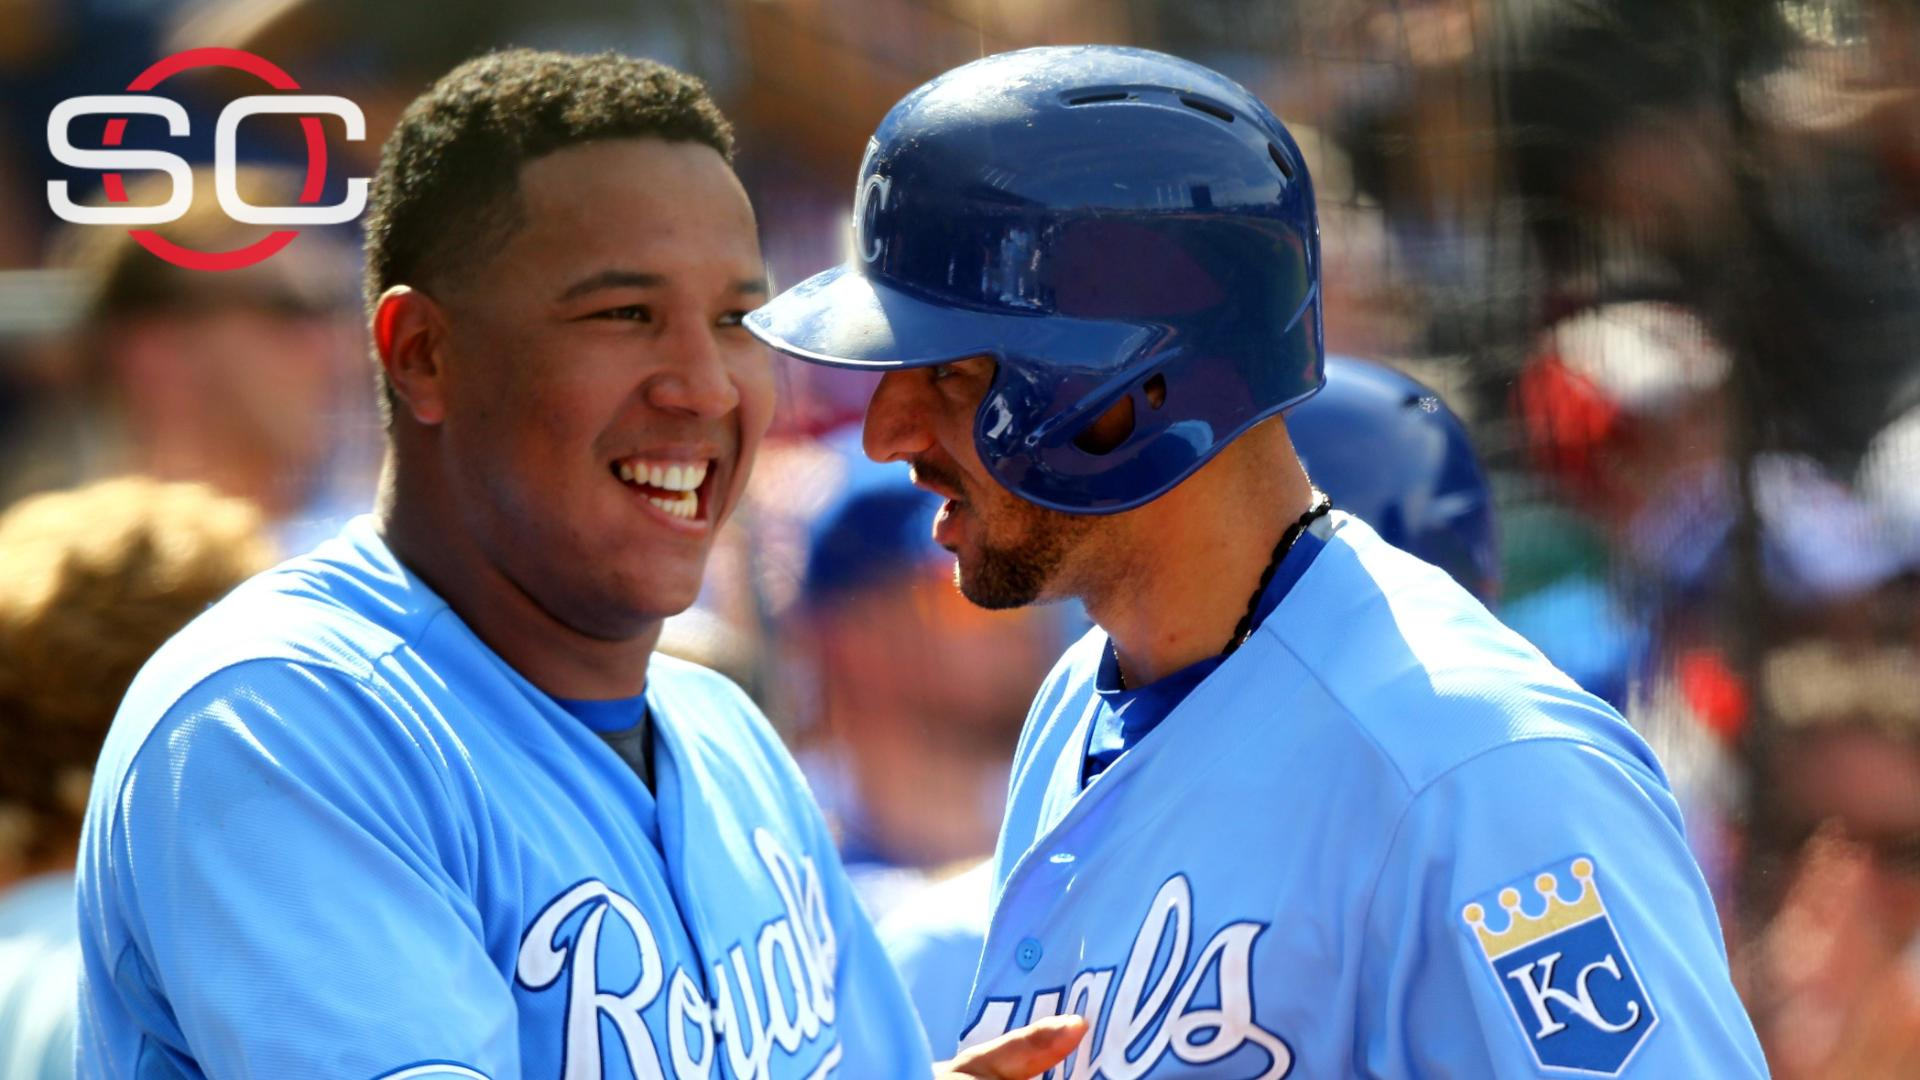 http://a.espncdn.com/media/motion/2015/0716/dm_150716_MLB_ROYALS_secondhalf1170/dm_150716_MLB_ROYALS_secondhalf1170.jpg